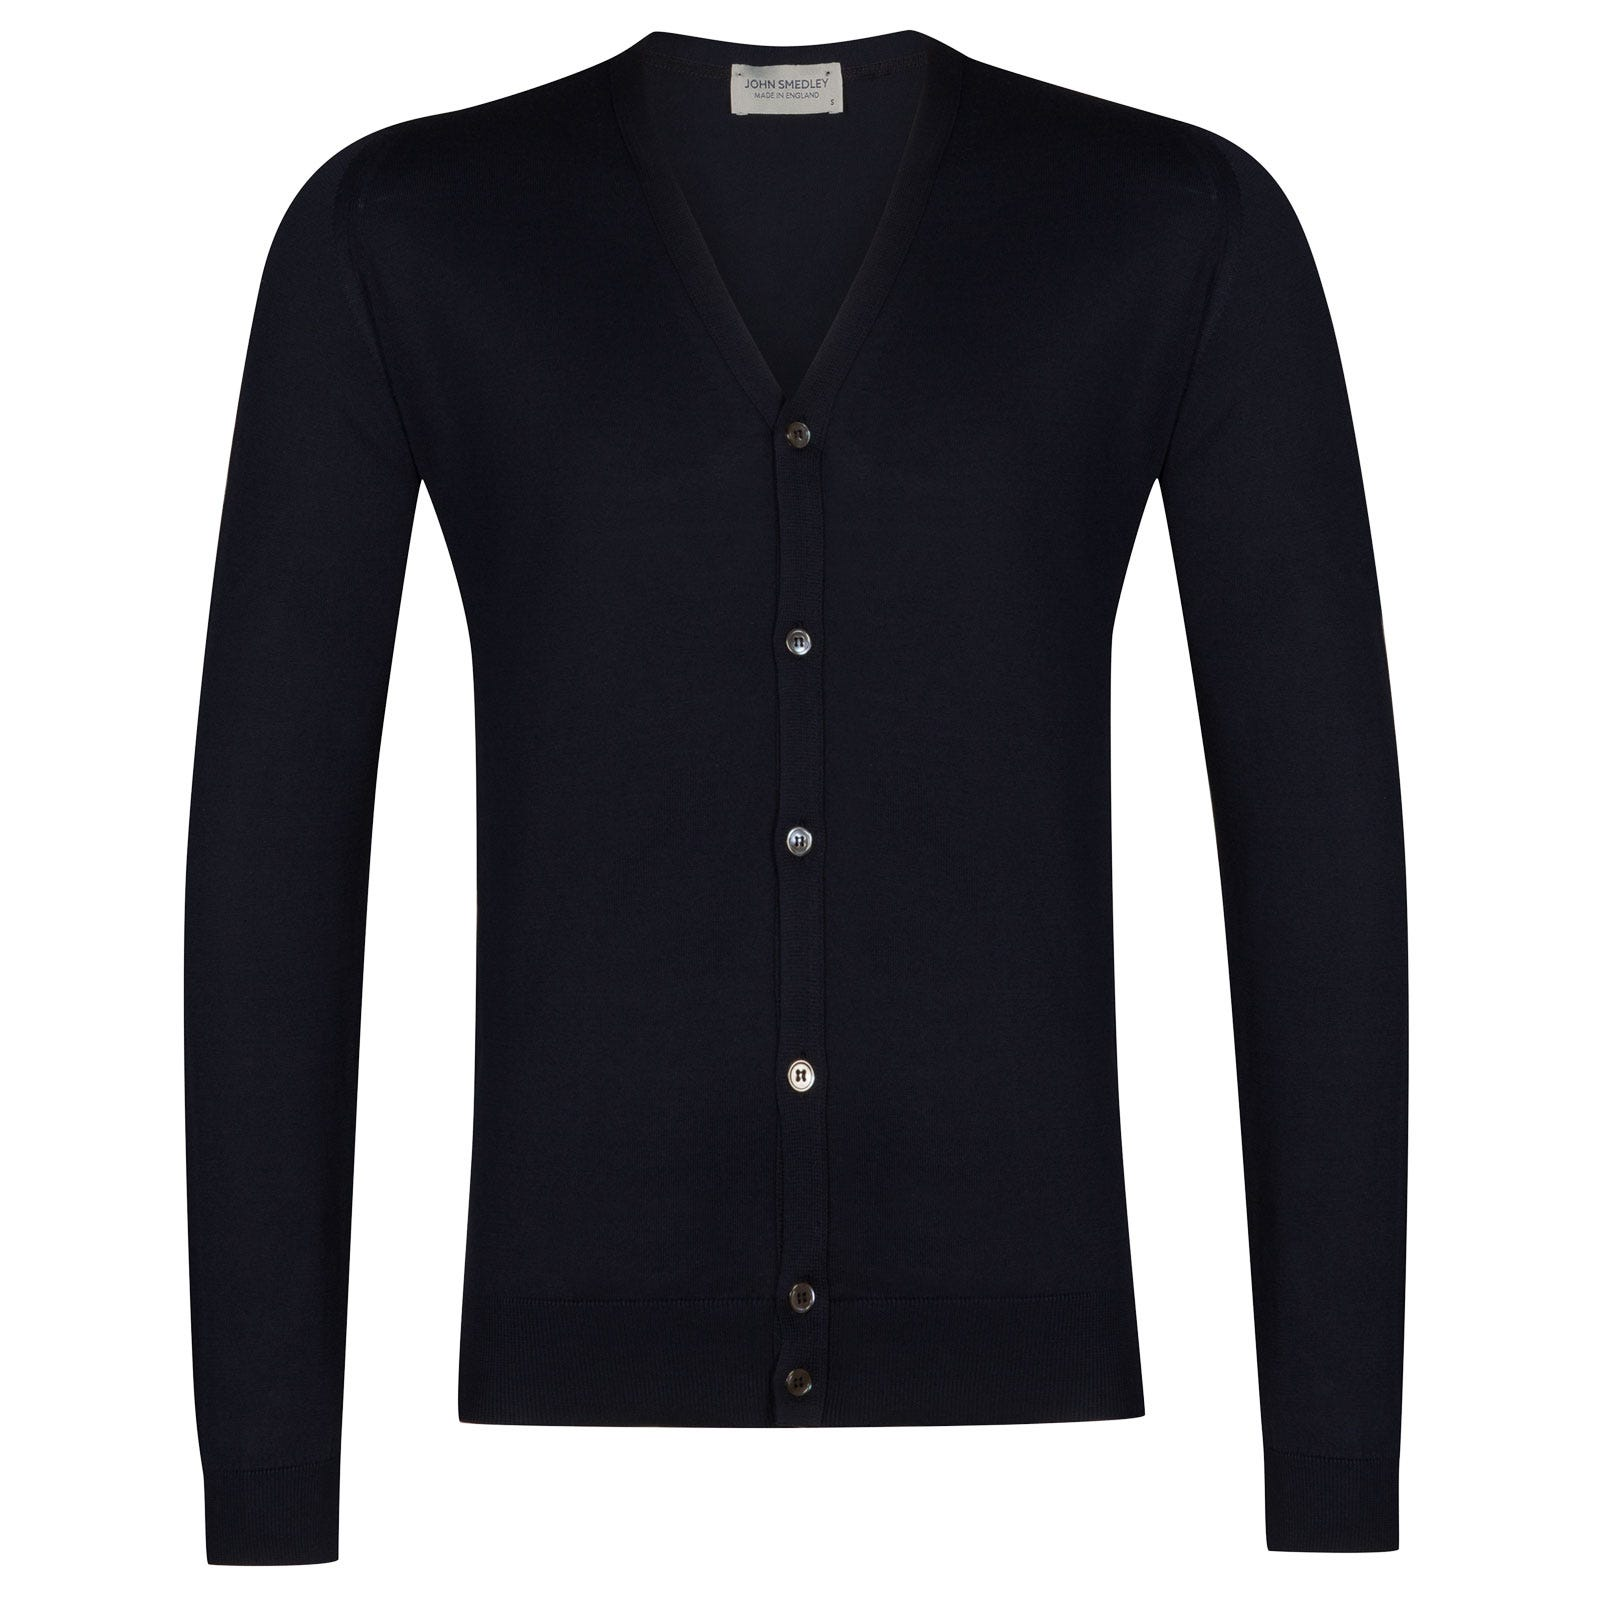 John Smedley whitchurch Sea Island Cotton Cardigan in Navy-XXL